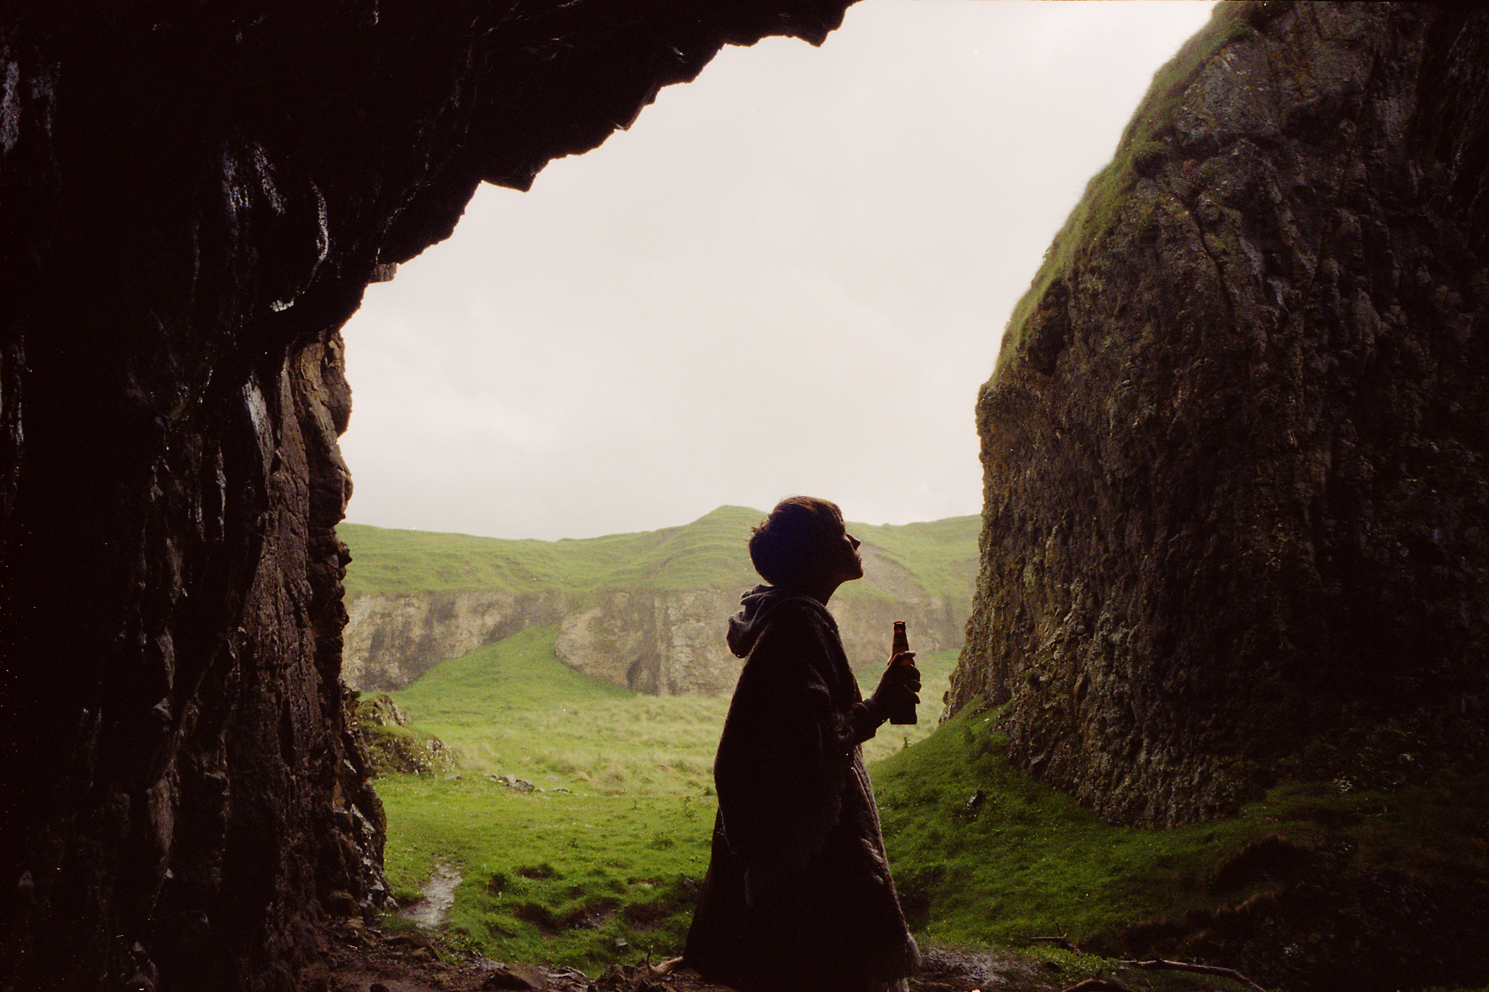 It rains a lot in Ireland. One minute its sunny, the next rain and sometimes both at the same time.During one shower we were lucky enough to find shelter in a cave. I reached into my purse and found a forgotten Guinness which John and I split as we waited out the rain.